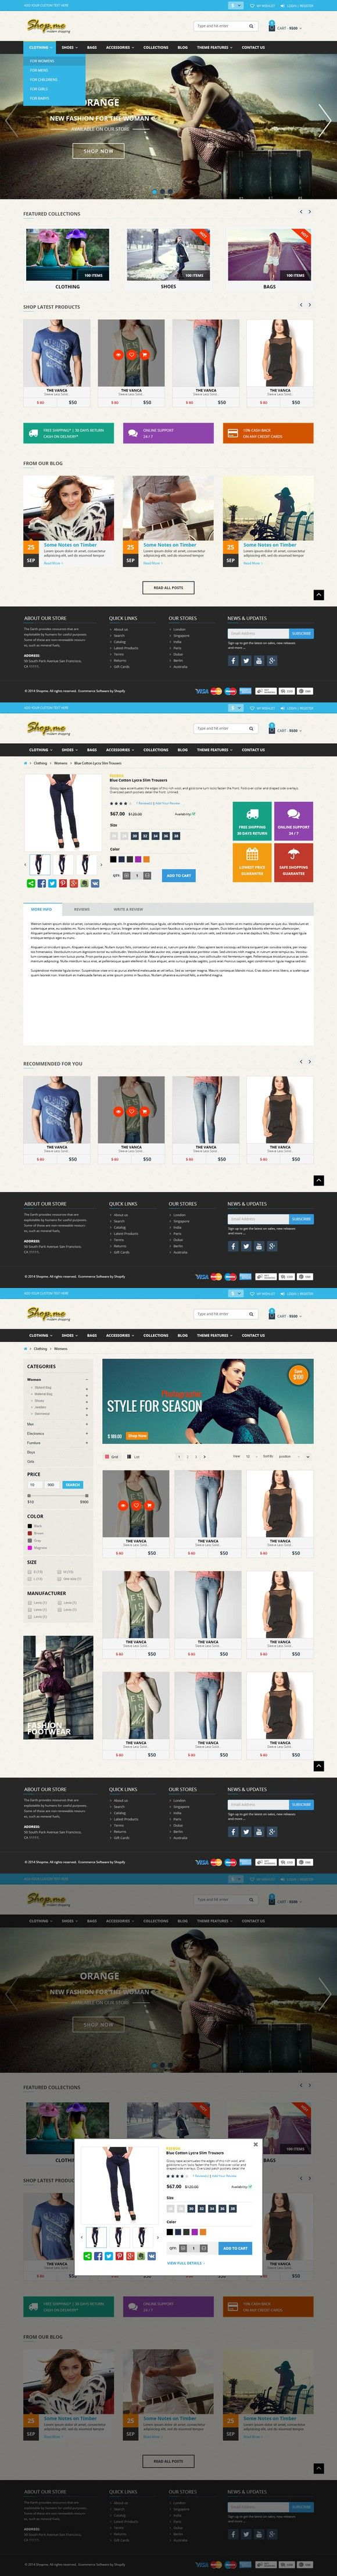 57 best OpenCart Themes images on Pinterest